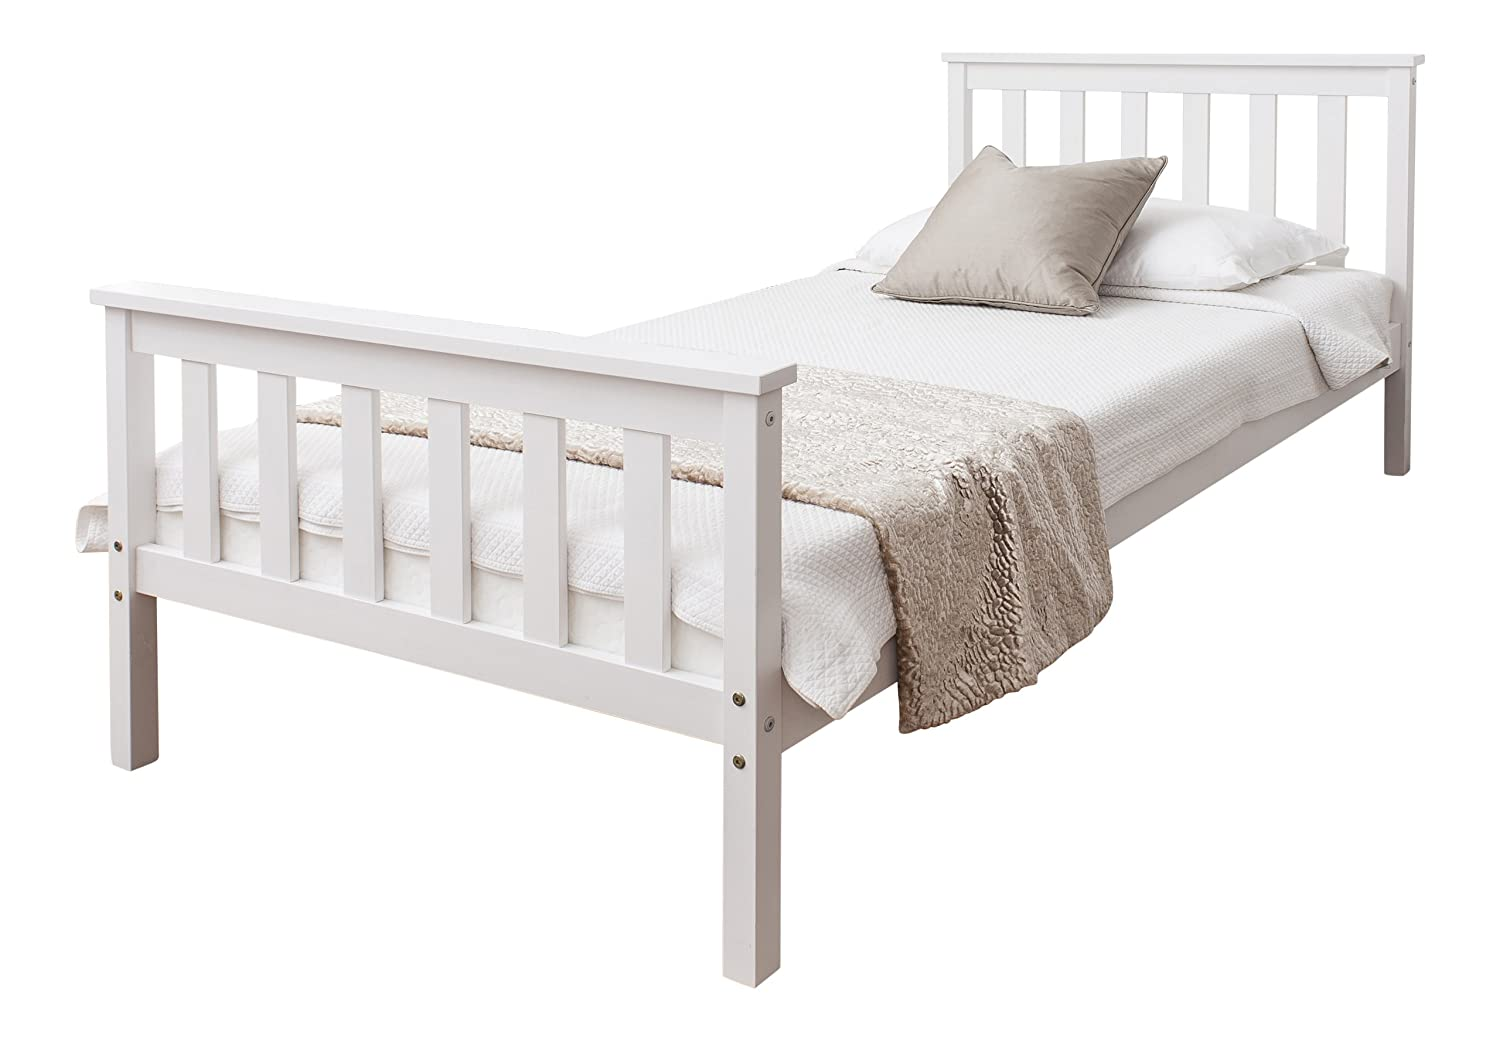 bed jellybean kidz ireland alfemo single castle beds